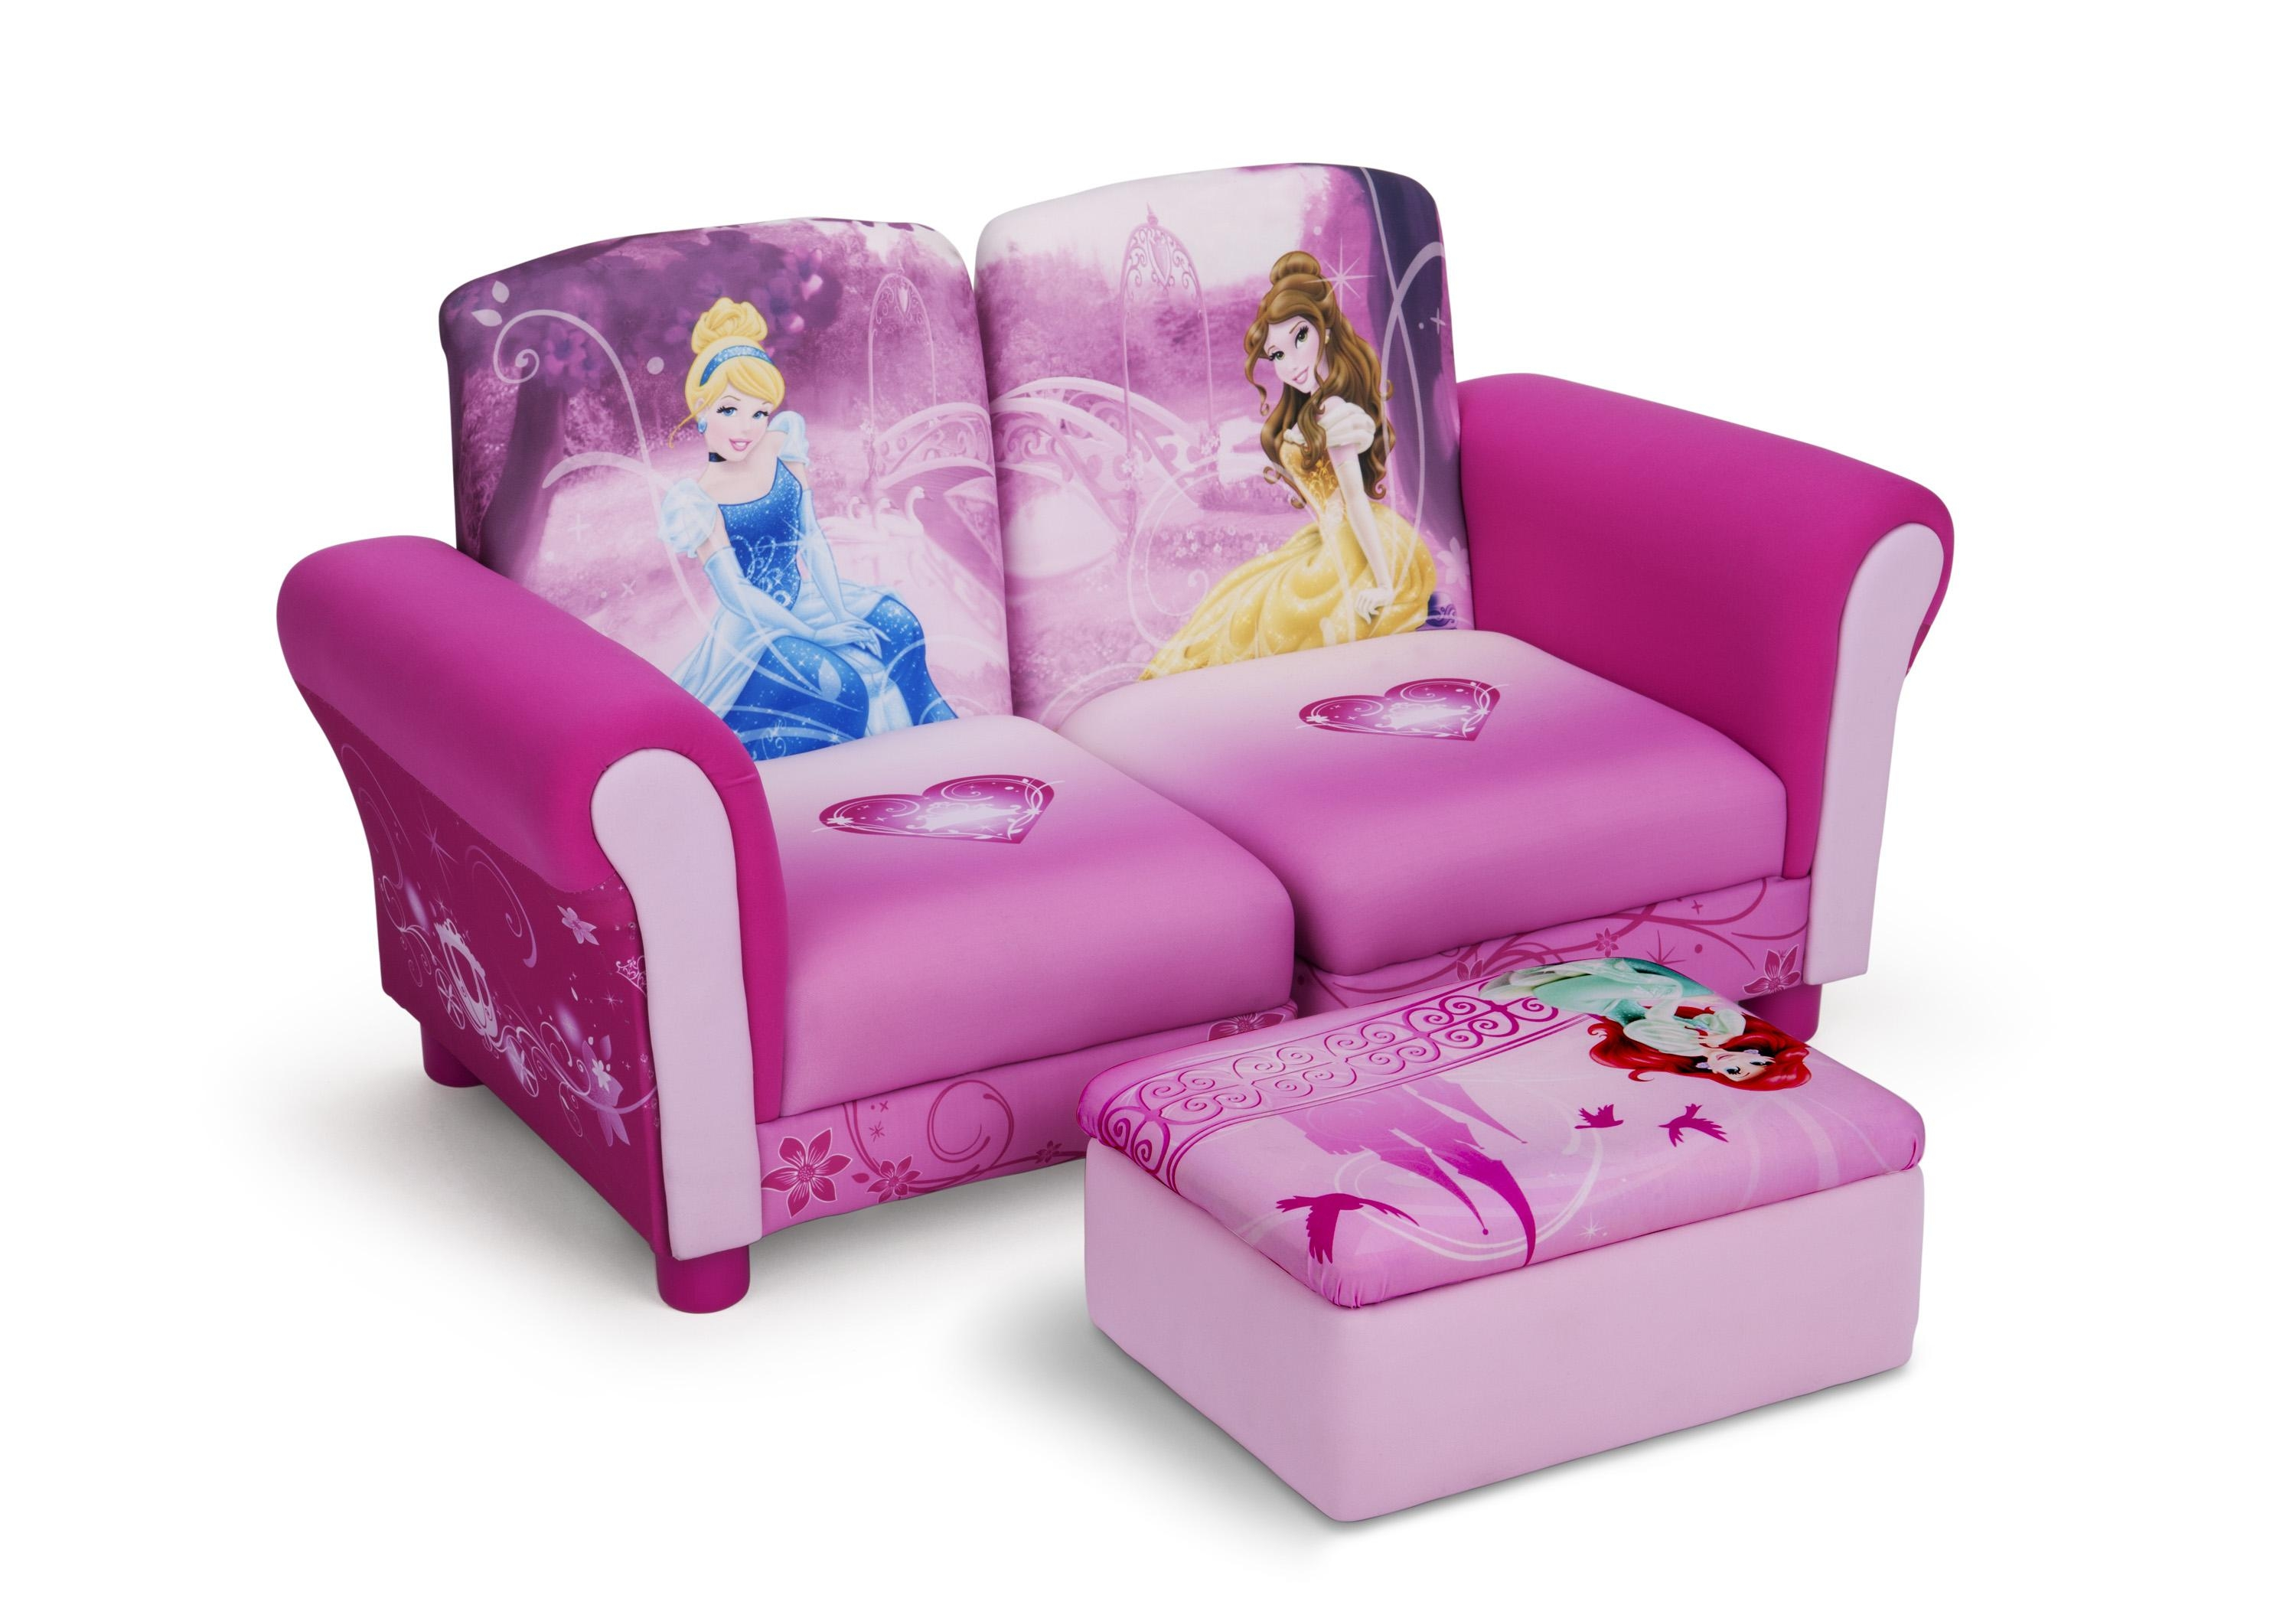 Sofas Center : 91F6A372B834 1 Sofa Chair Fordlerdlers Disney With Regard To Childrens Sofa Chairs (Image 12 of 20)